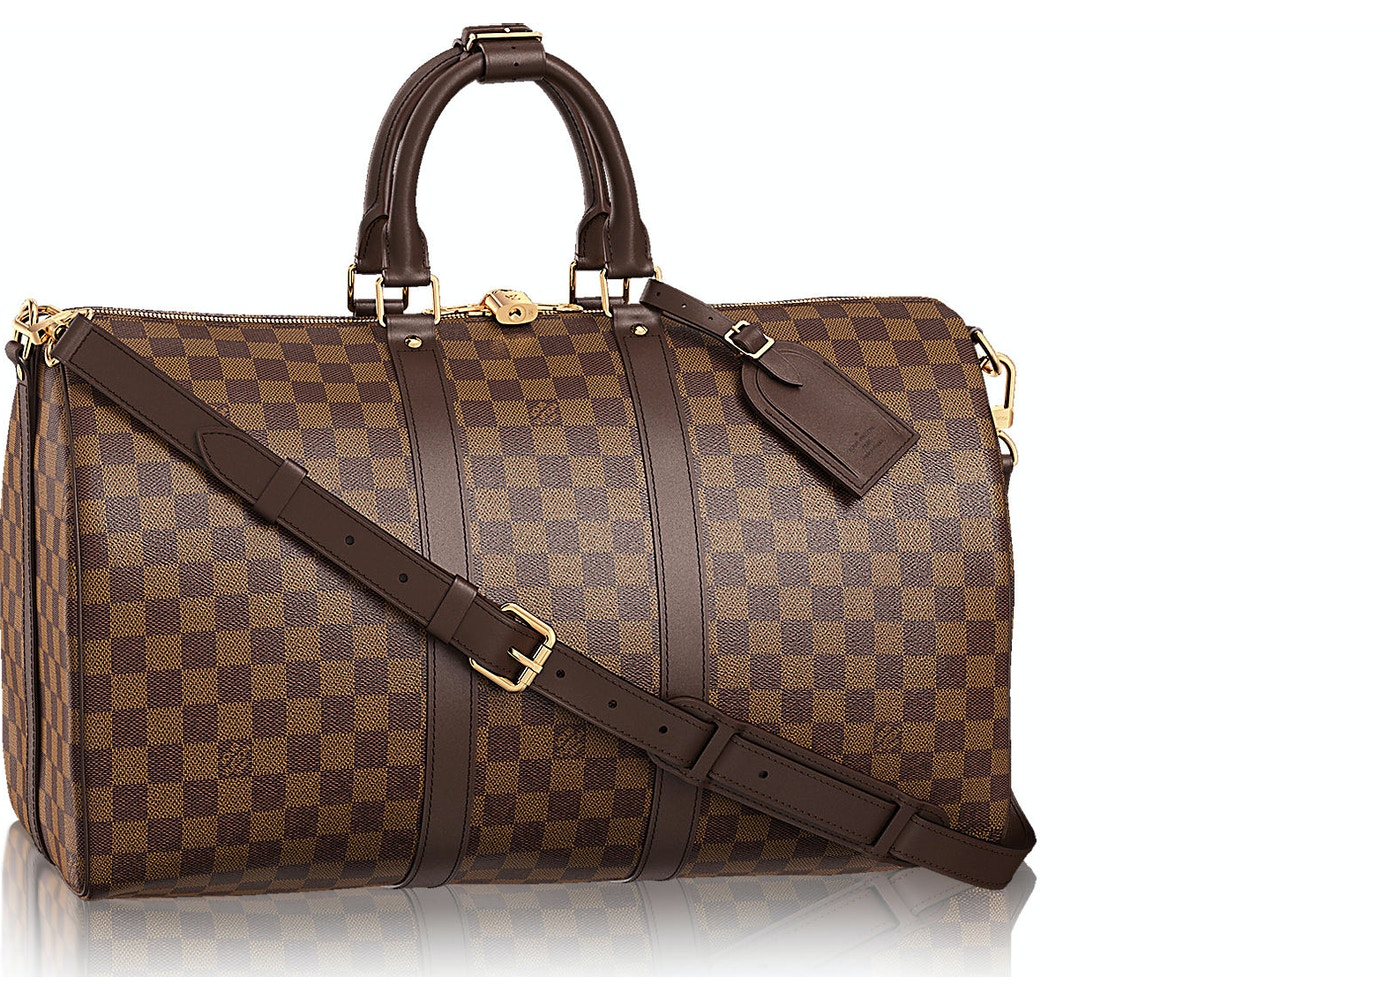 1db62b44e7c2 Louis Vuitton Keepall Bandouliere Damier Ebene (With Accessories ...